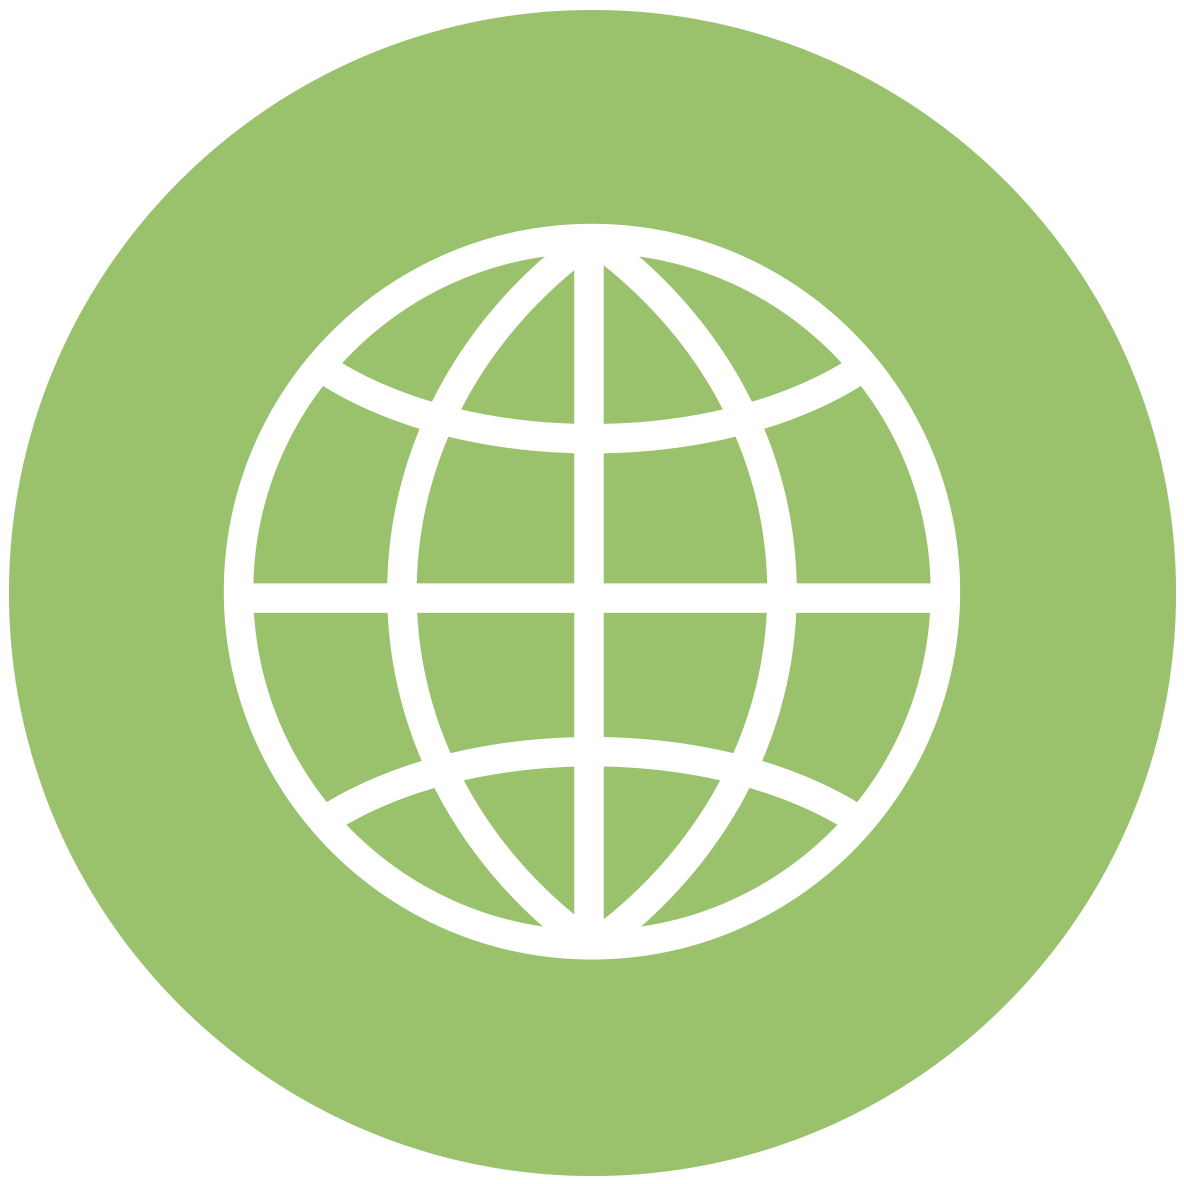 Website icon png